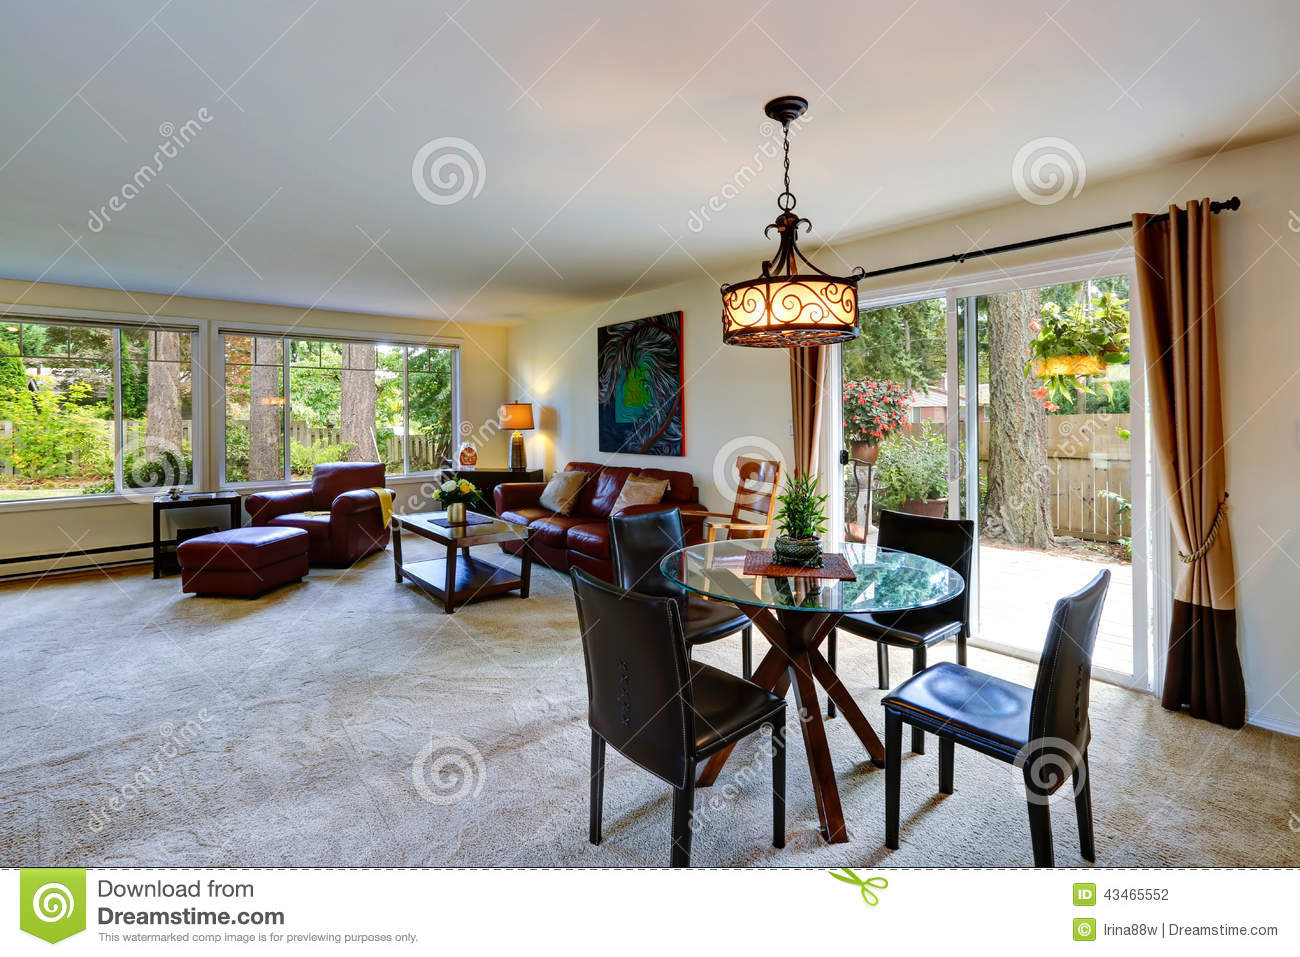 house interior with open floor plan. living room with dining area